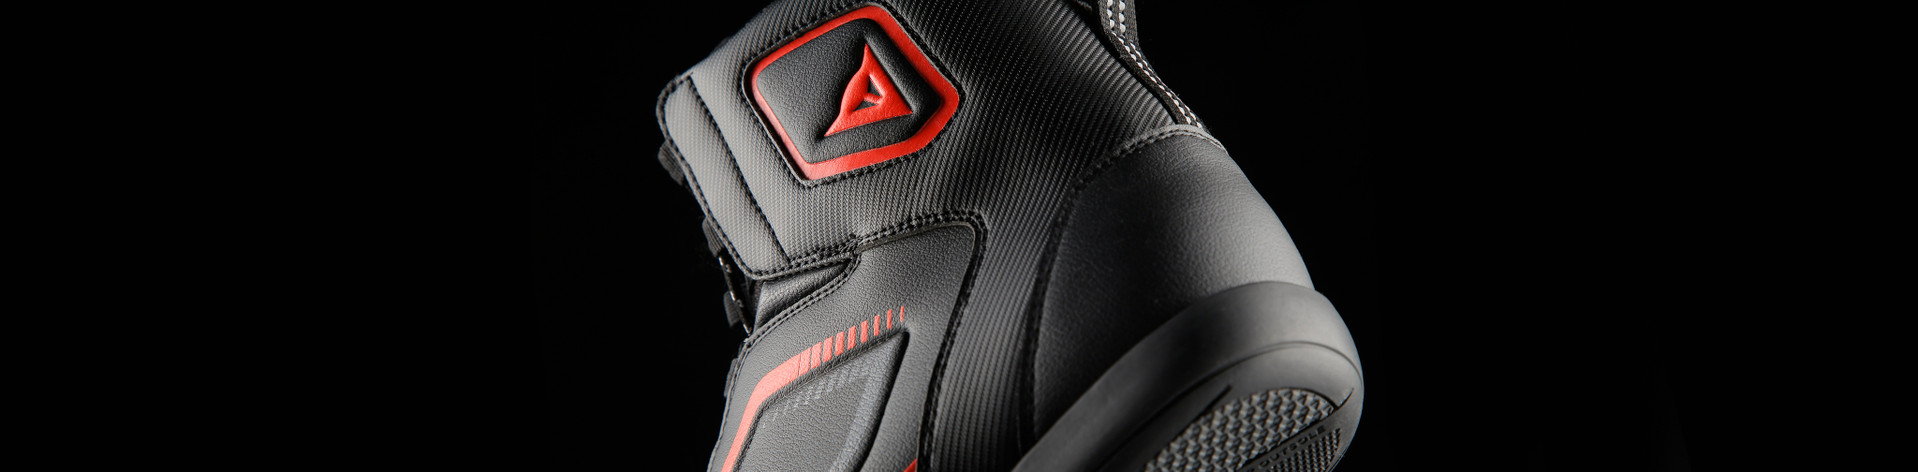 Dainese Motorbike Shoes